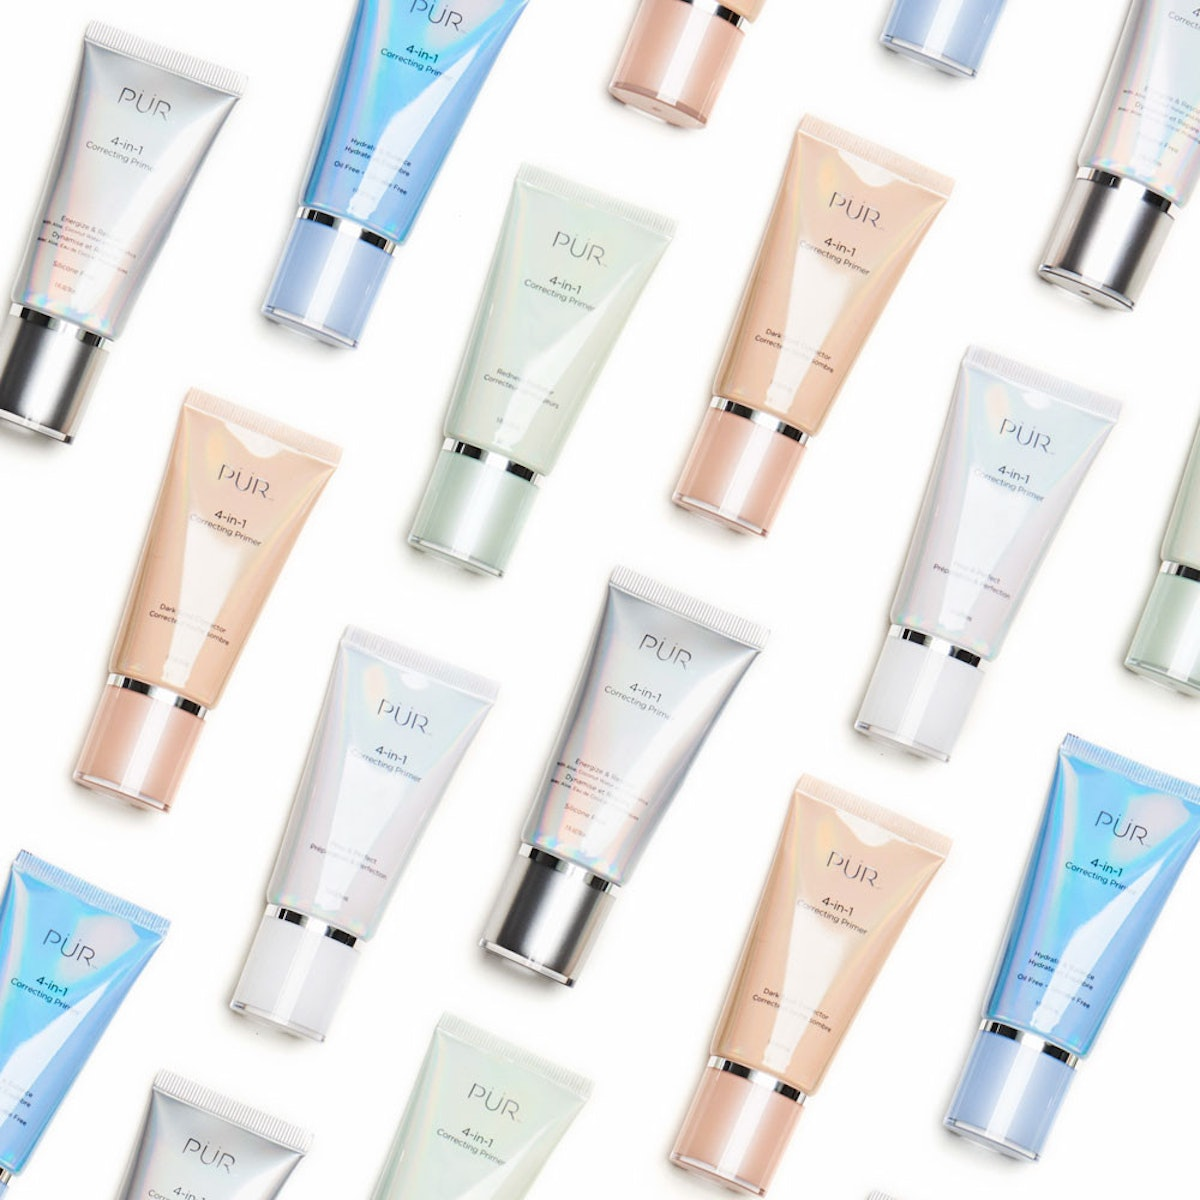 8 New 2019 Primers With Good-For-You Ingredients